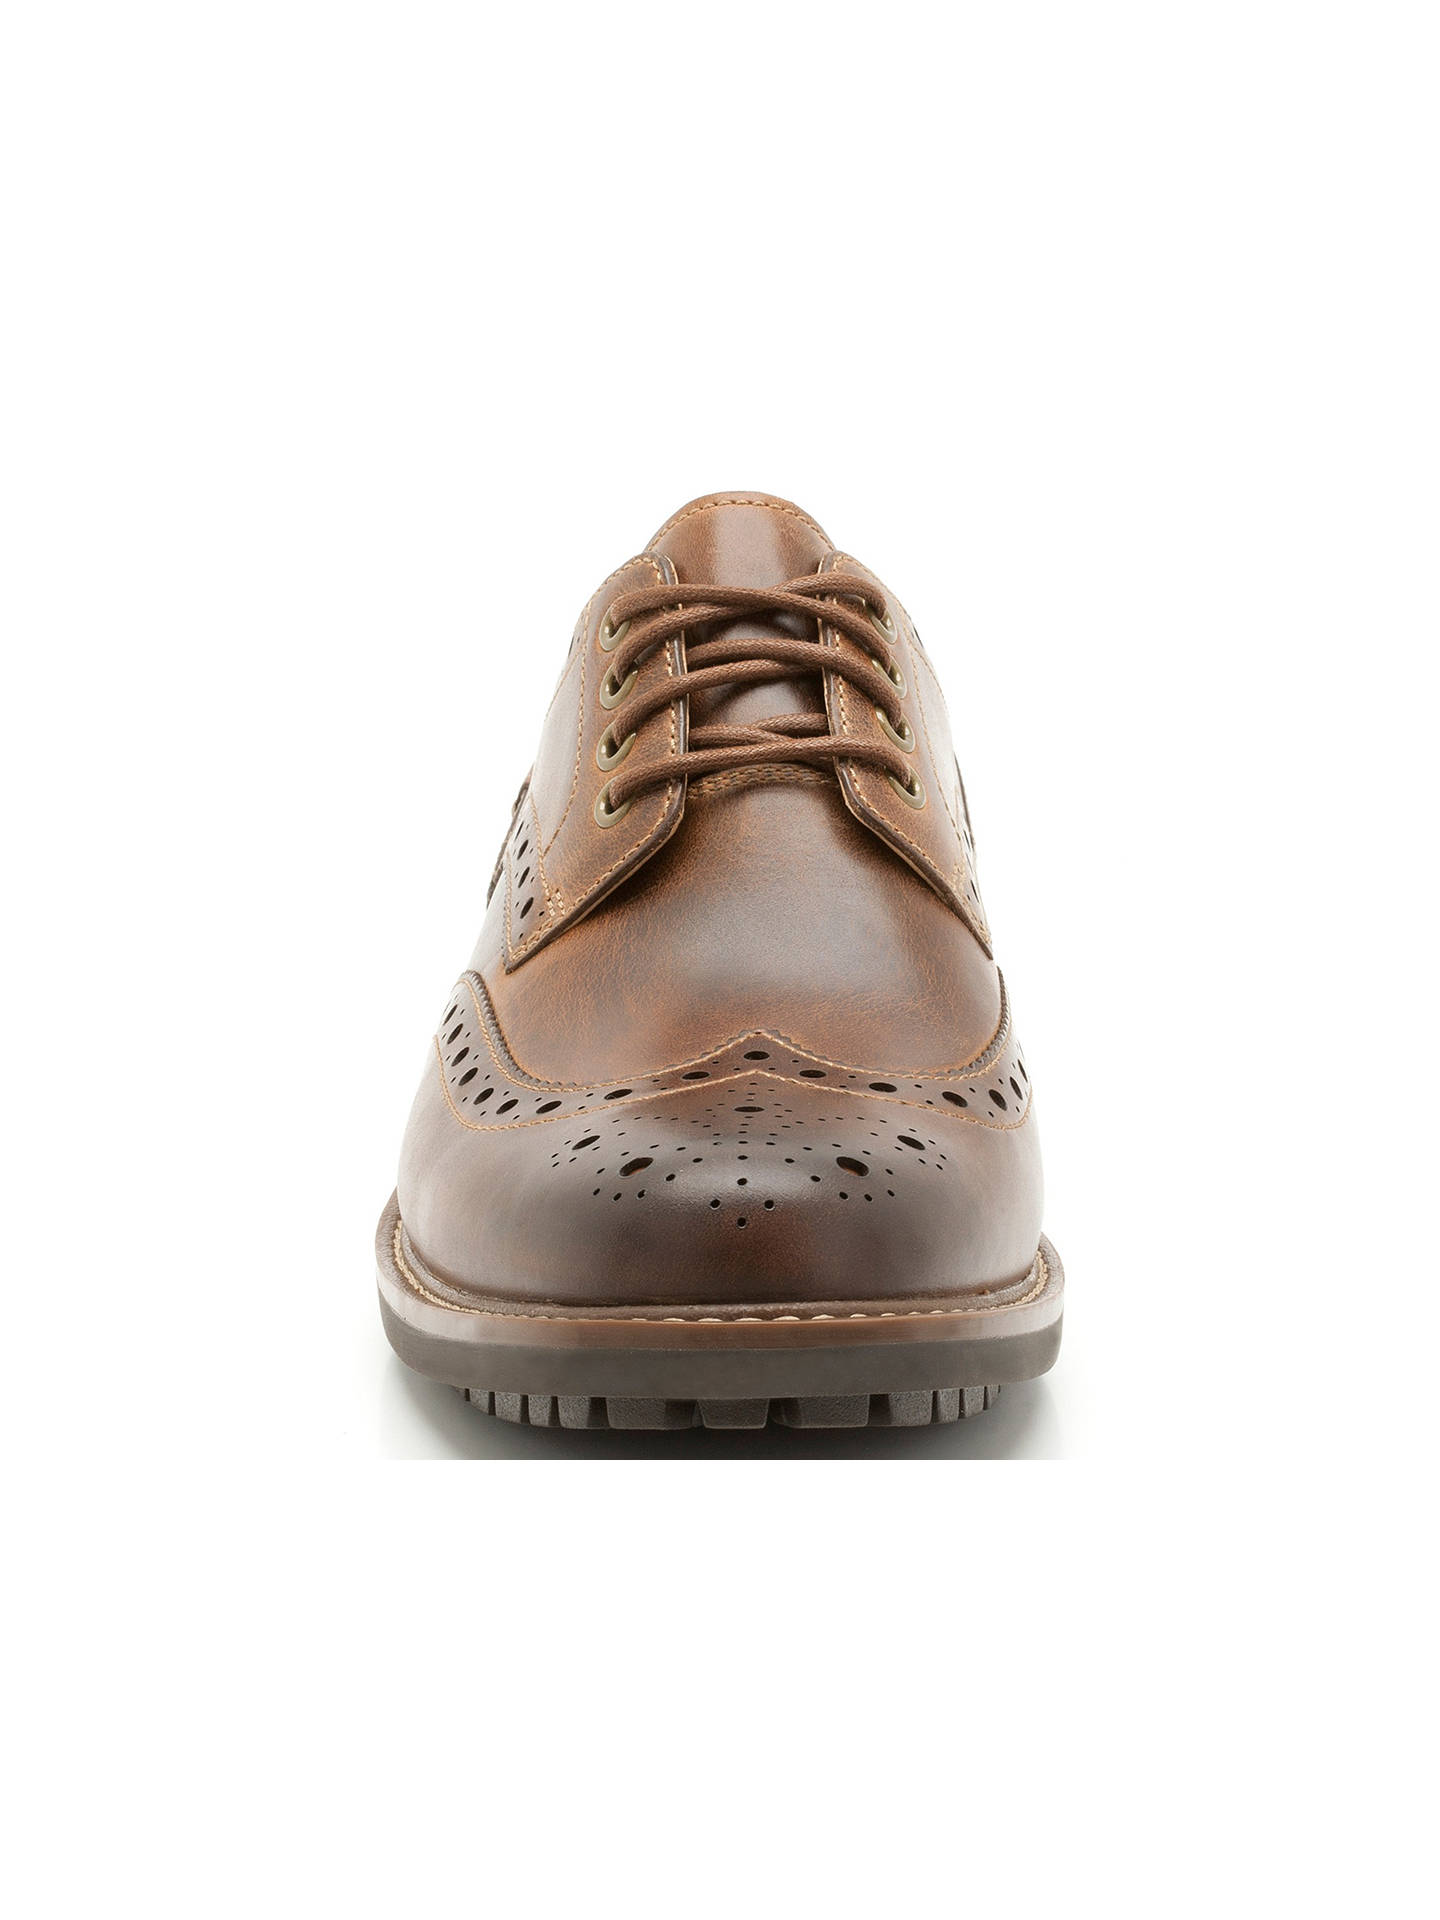 8940bee44984f ... BuyClarks Montacute Wing Leather Brogue Shoes, Dark Tan, 6 Online at  johnlewis.com ...